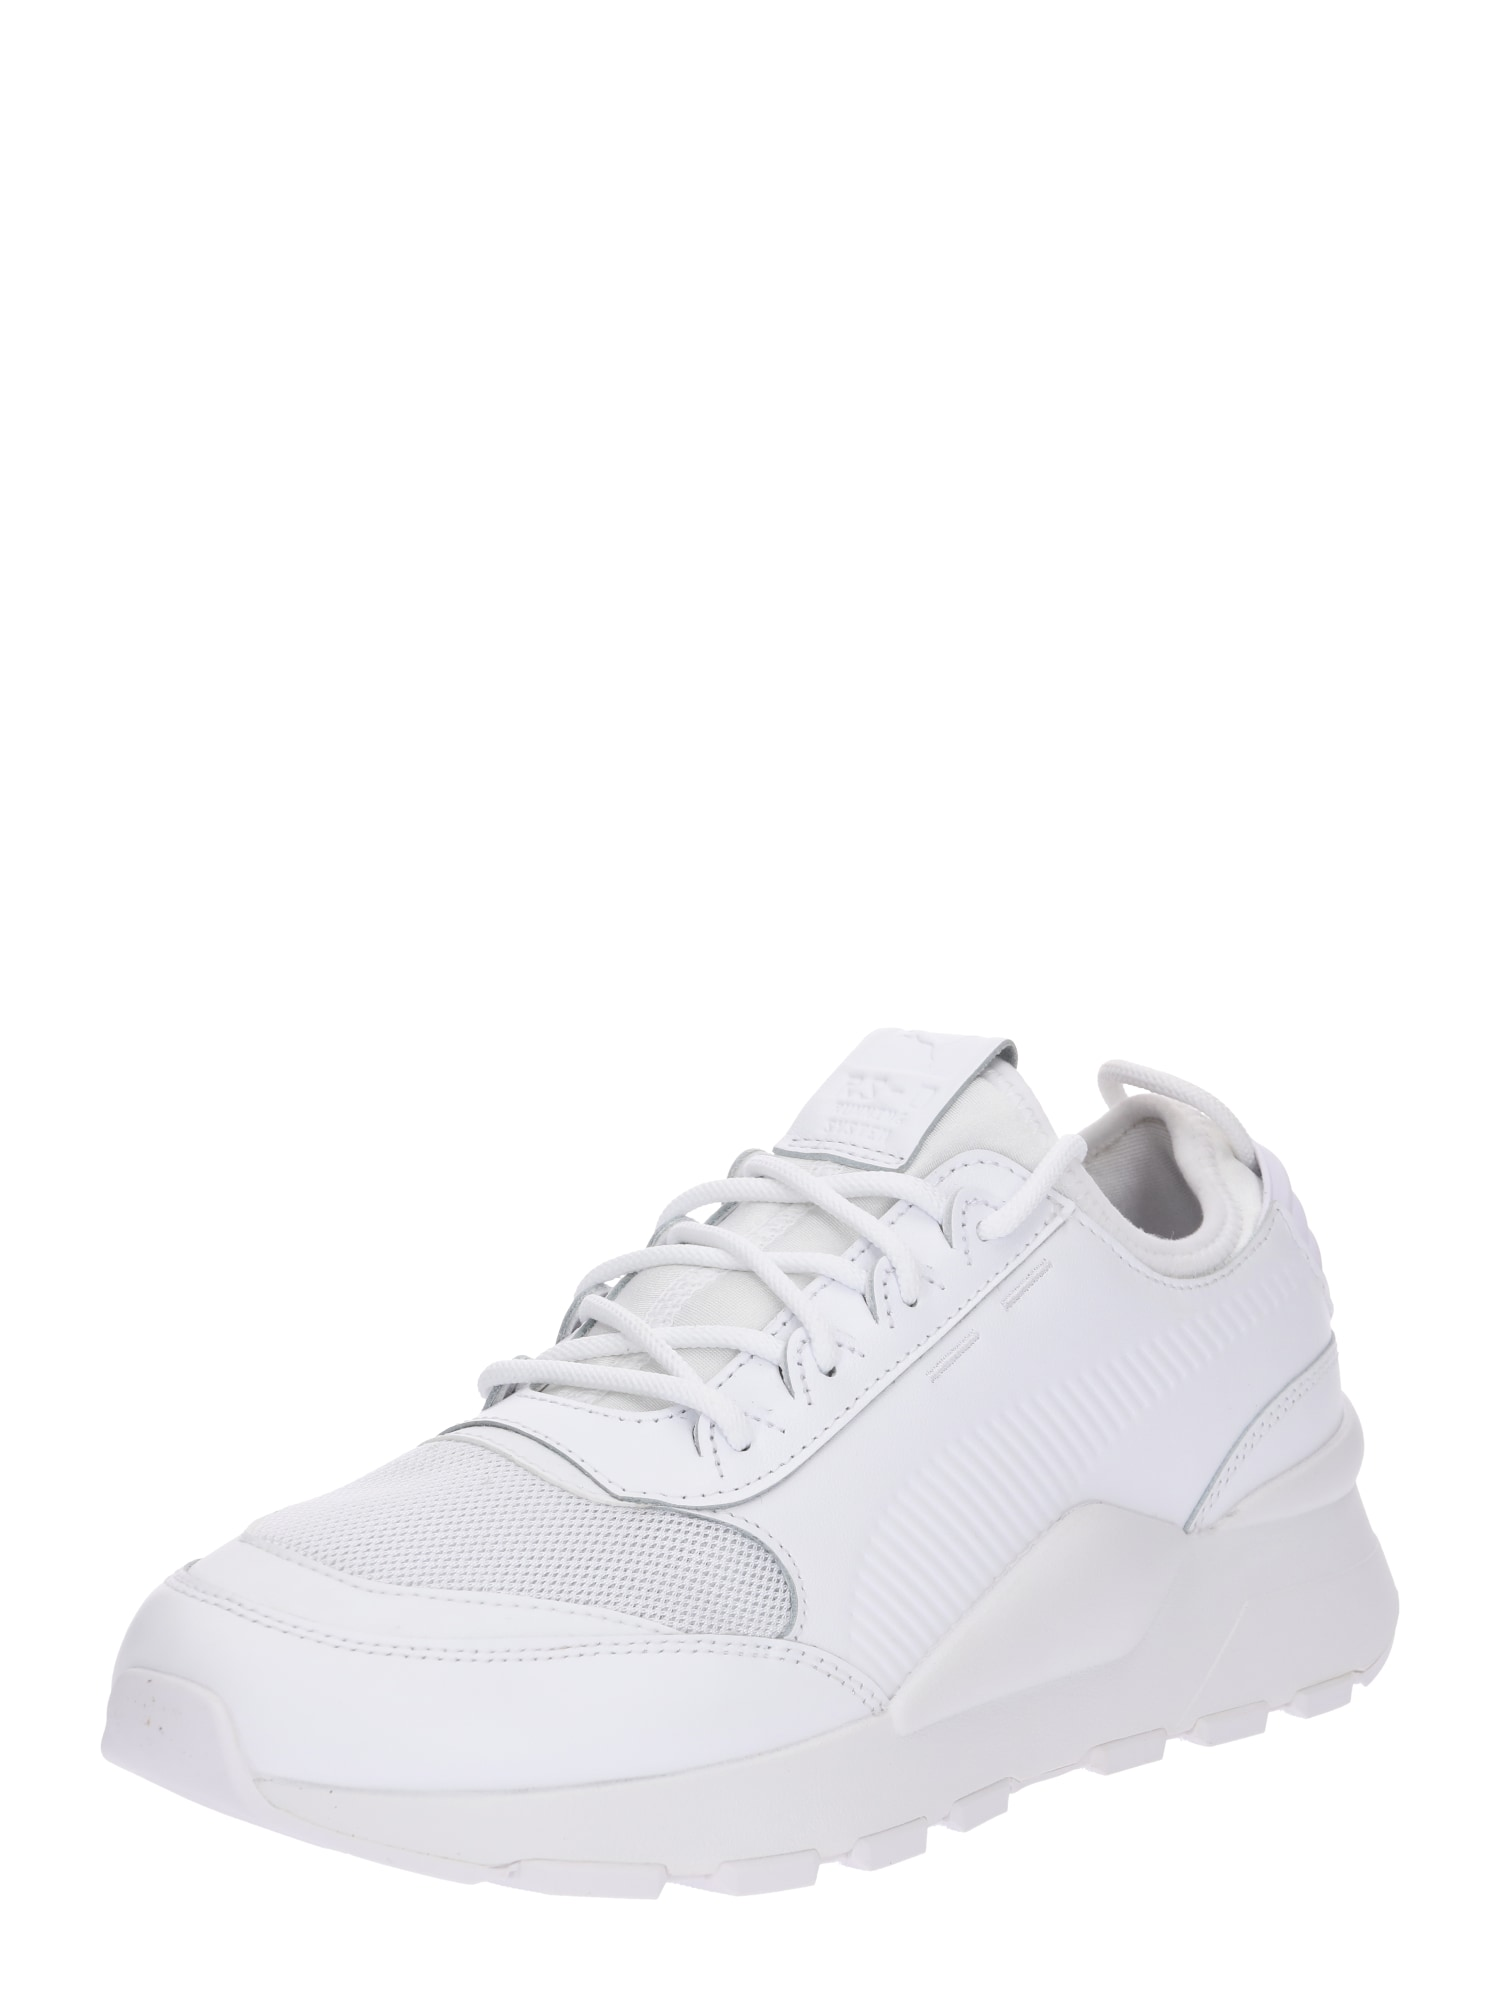 PUMA, Dames Sneakers laag 'RS-0 Sound', wit